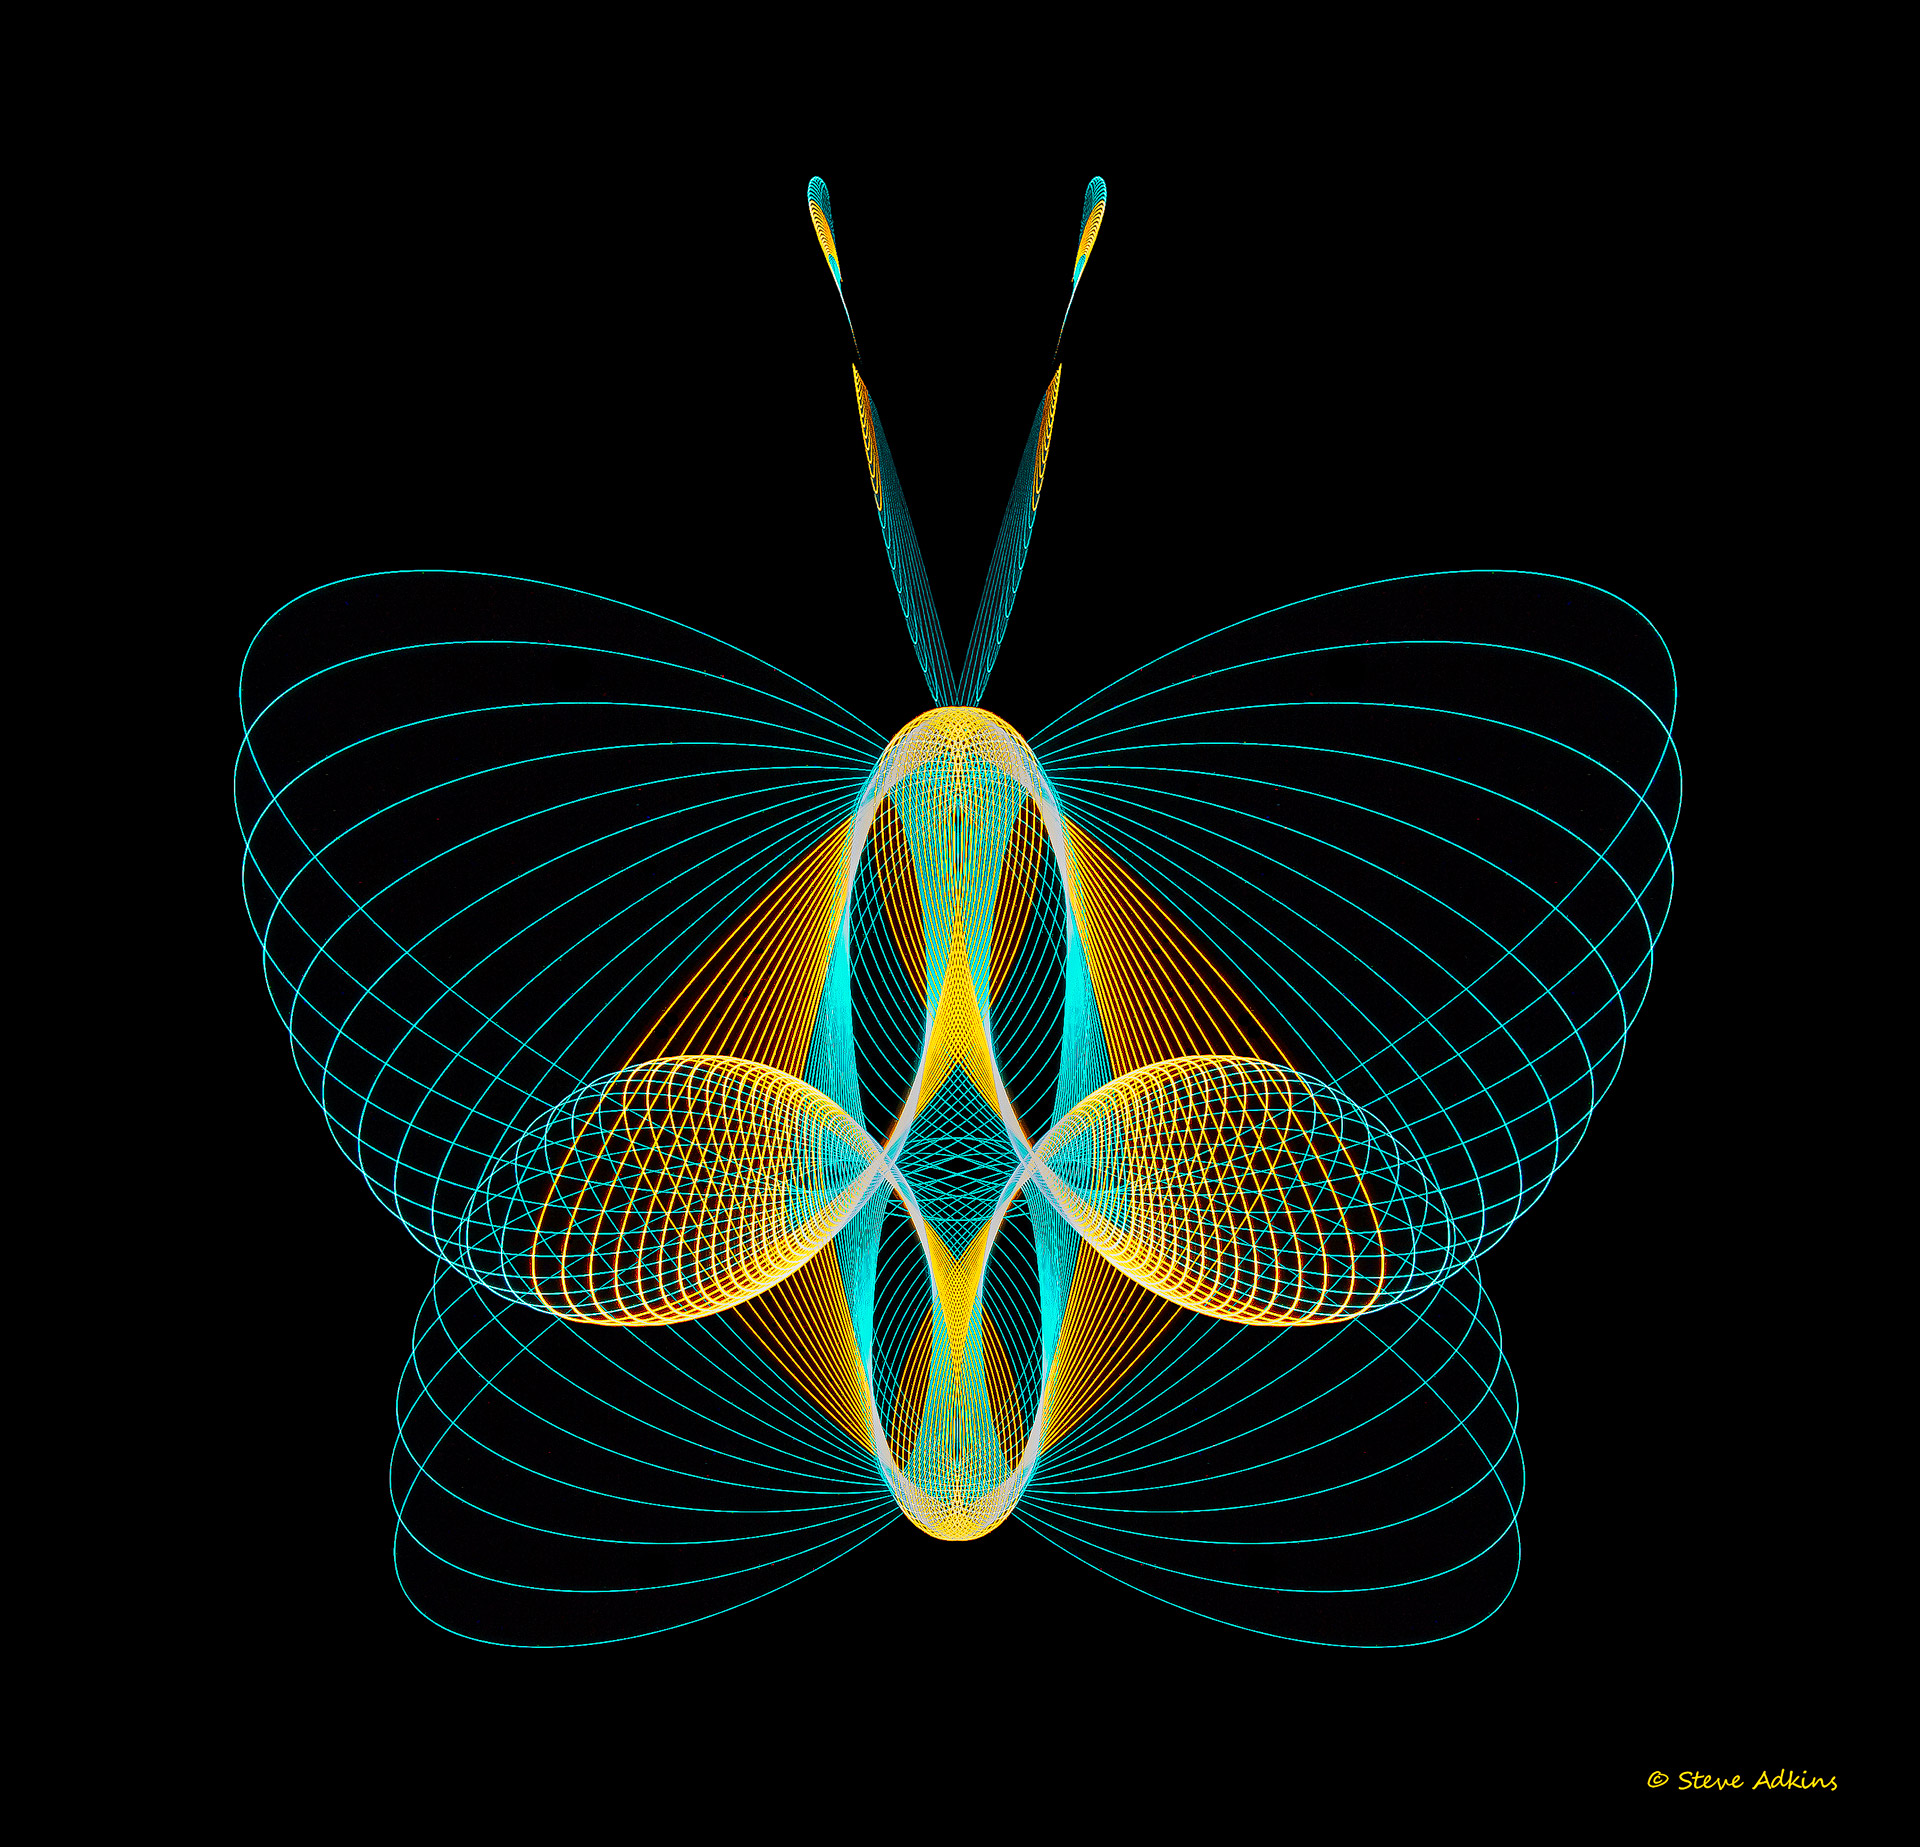 pysiogram,light weaving,light,weave,butterfly,